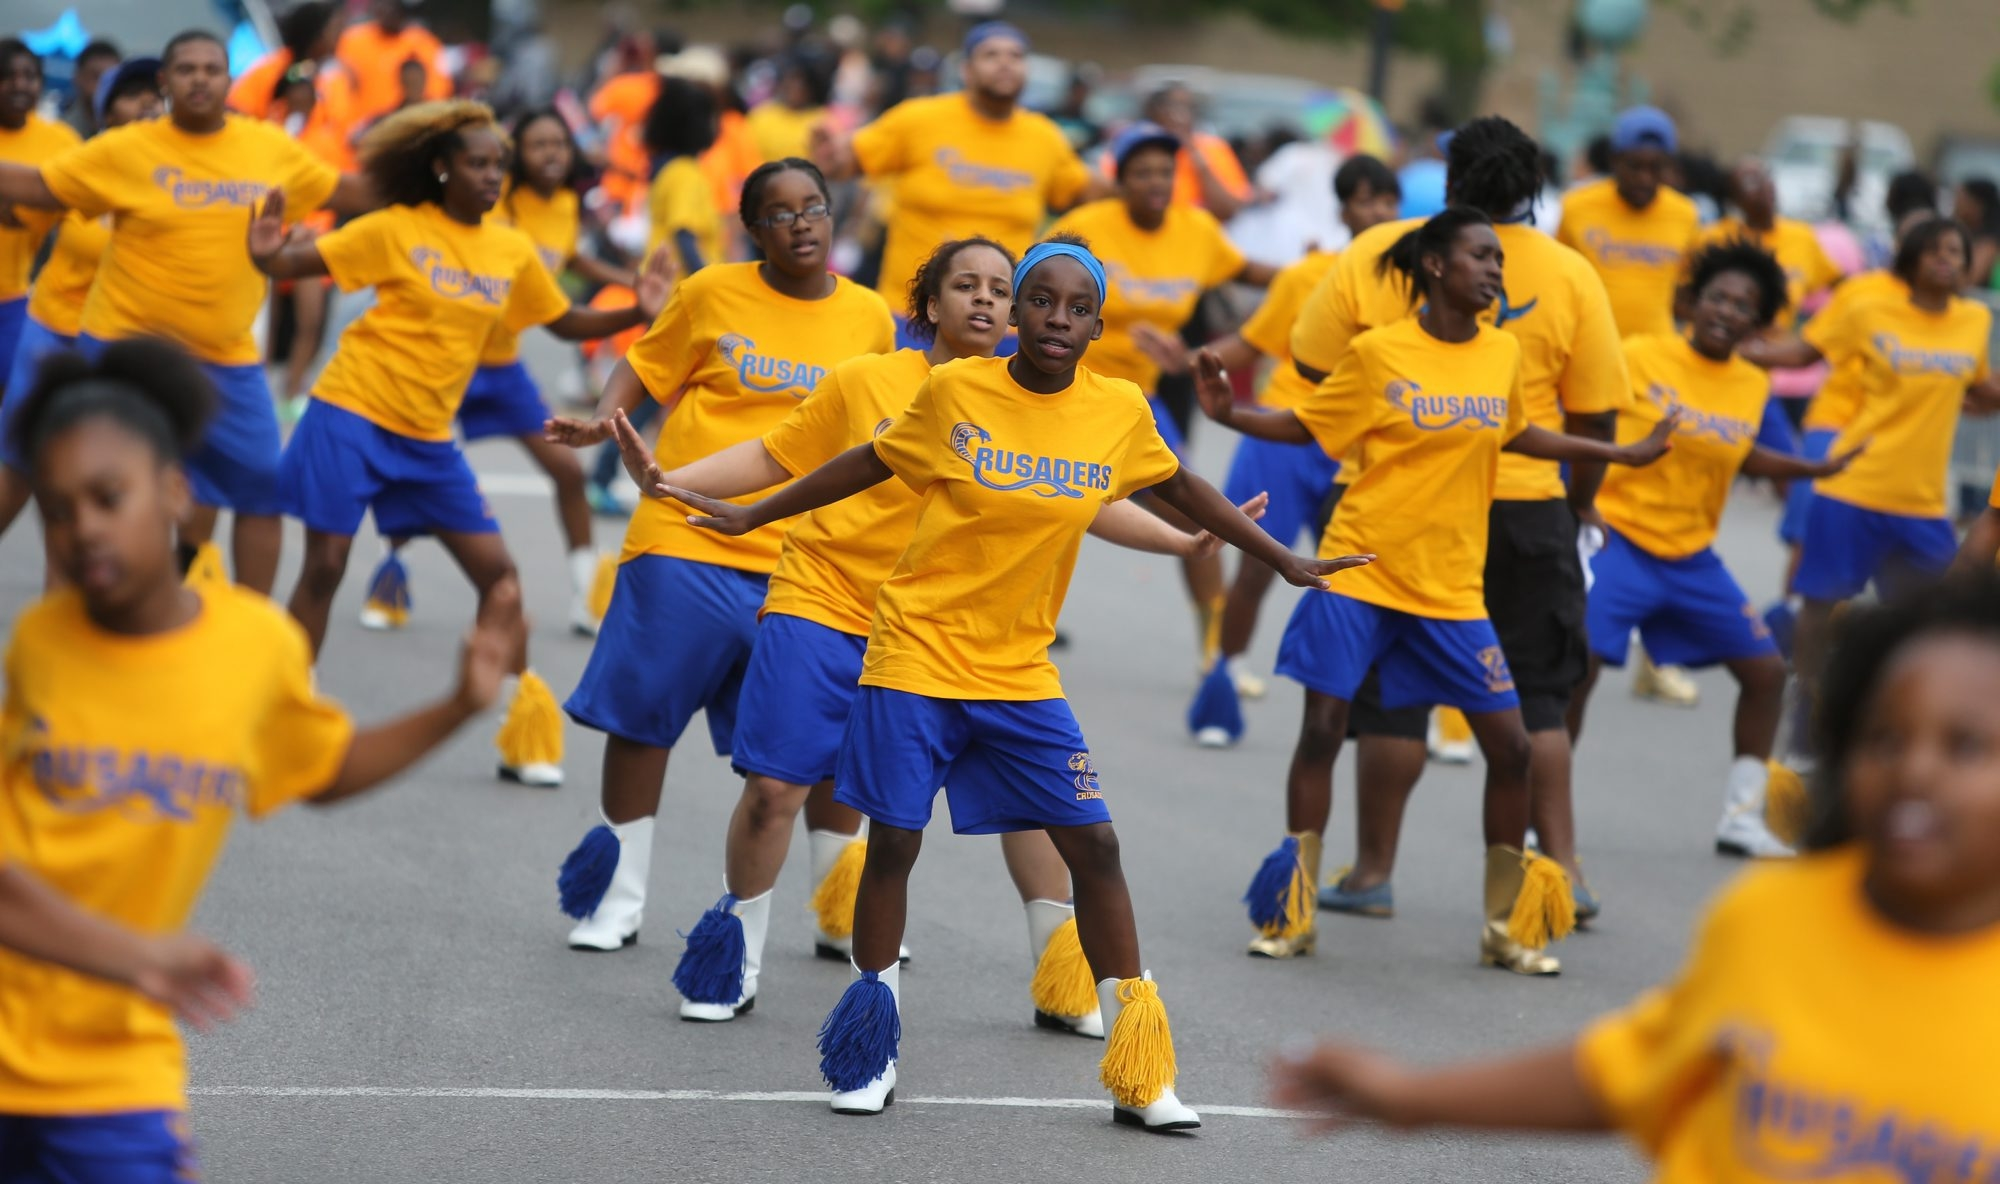 Members of the Crusaders Drill Team perform on Genesee Street in the annual parade to kick off the Juneteenth Festival in Buffalo on Saturday.